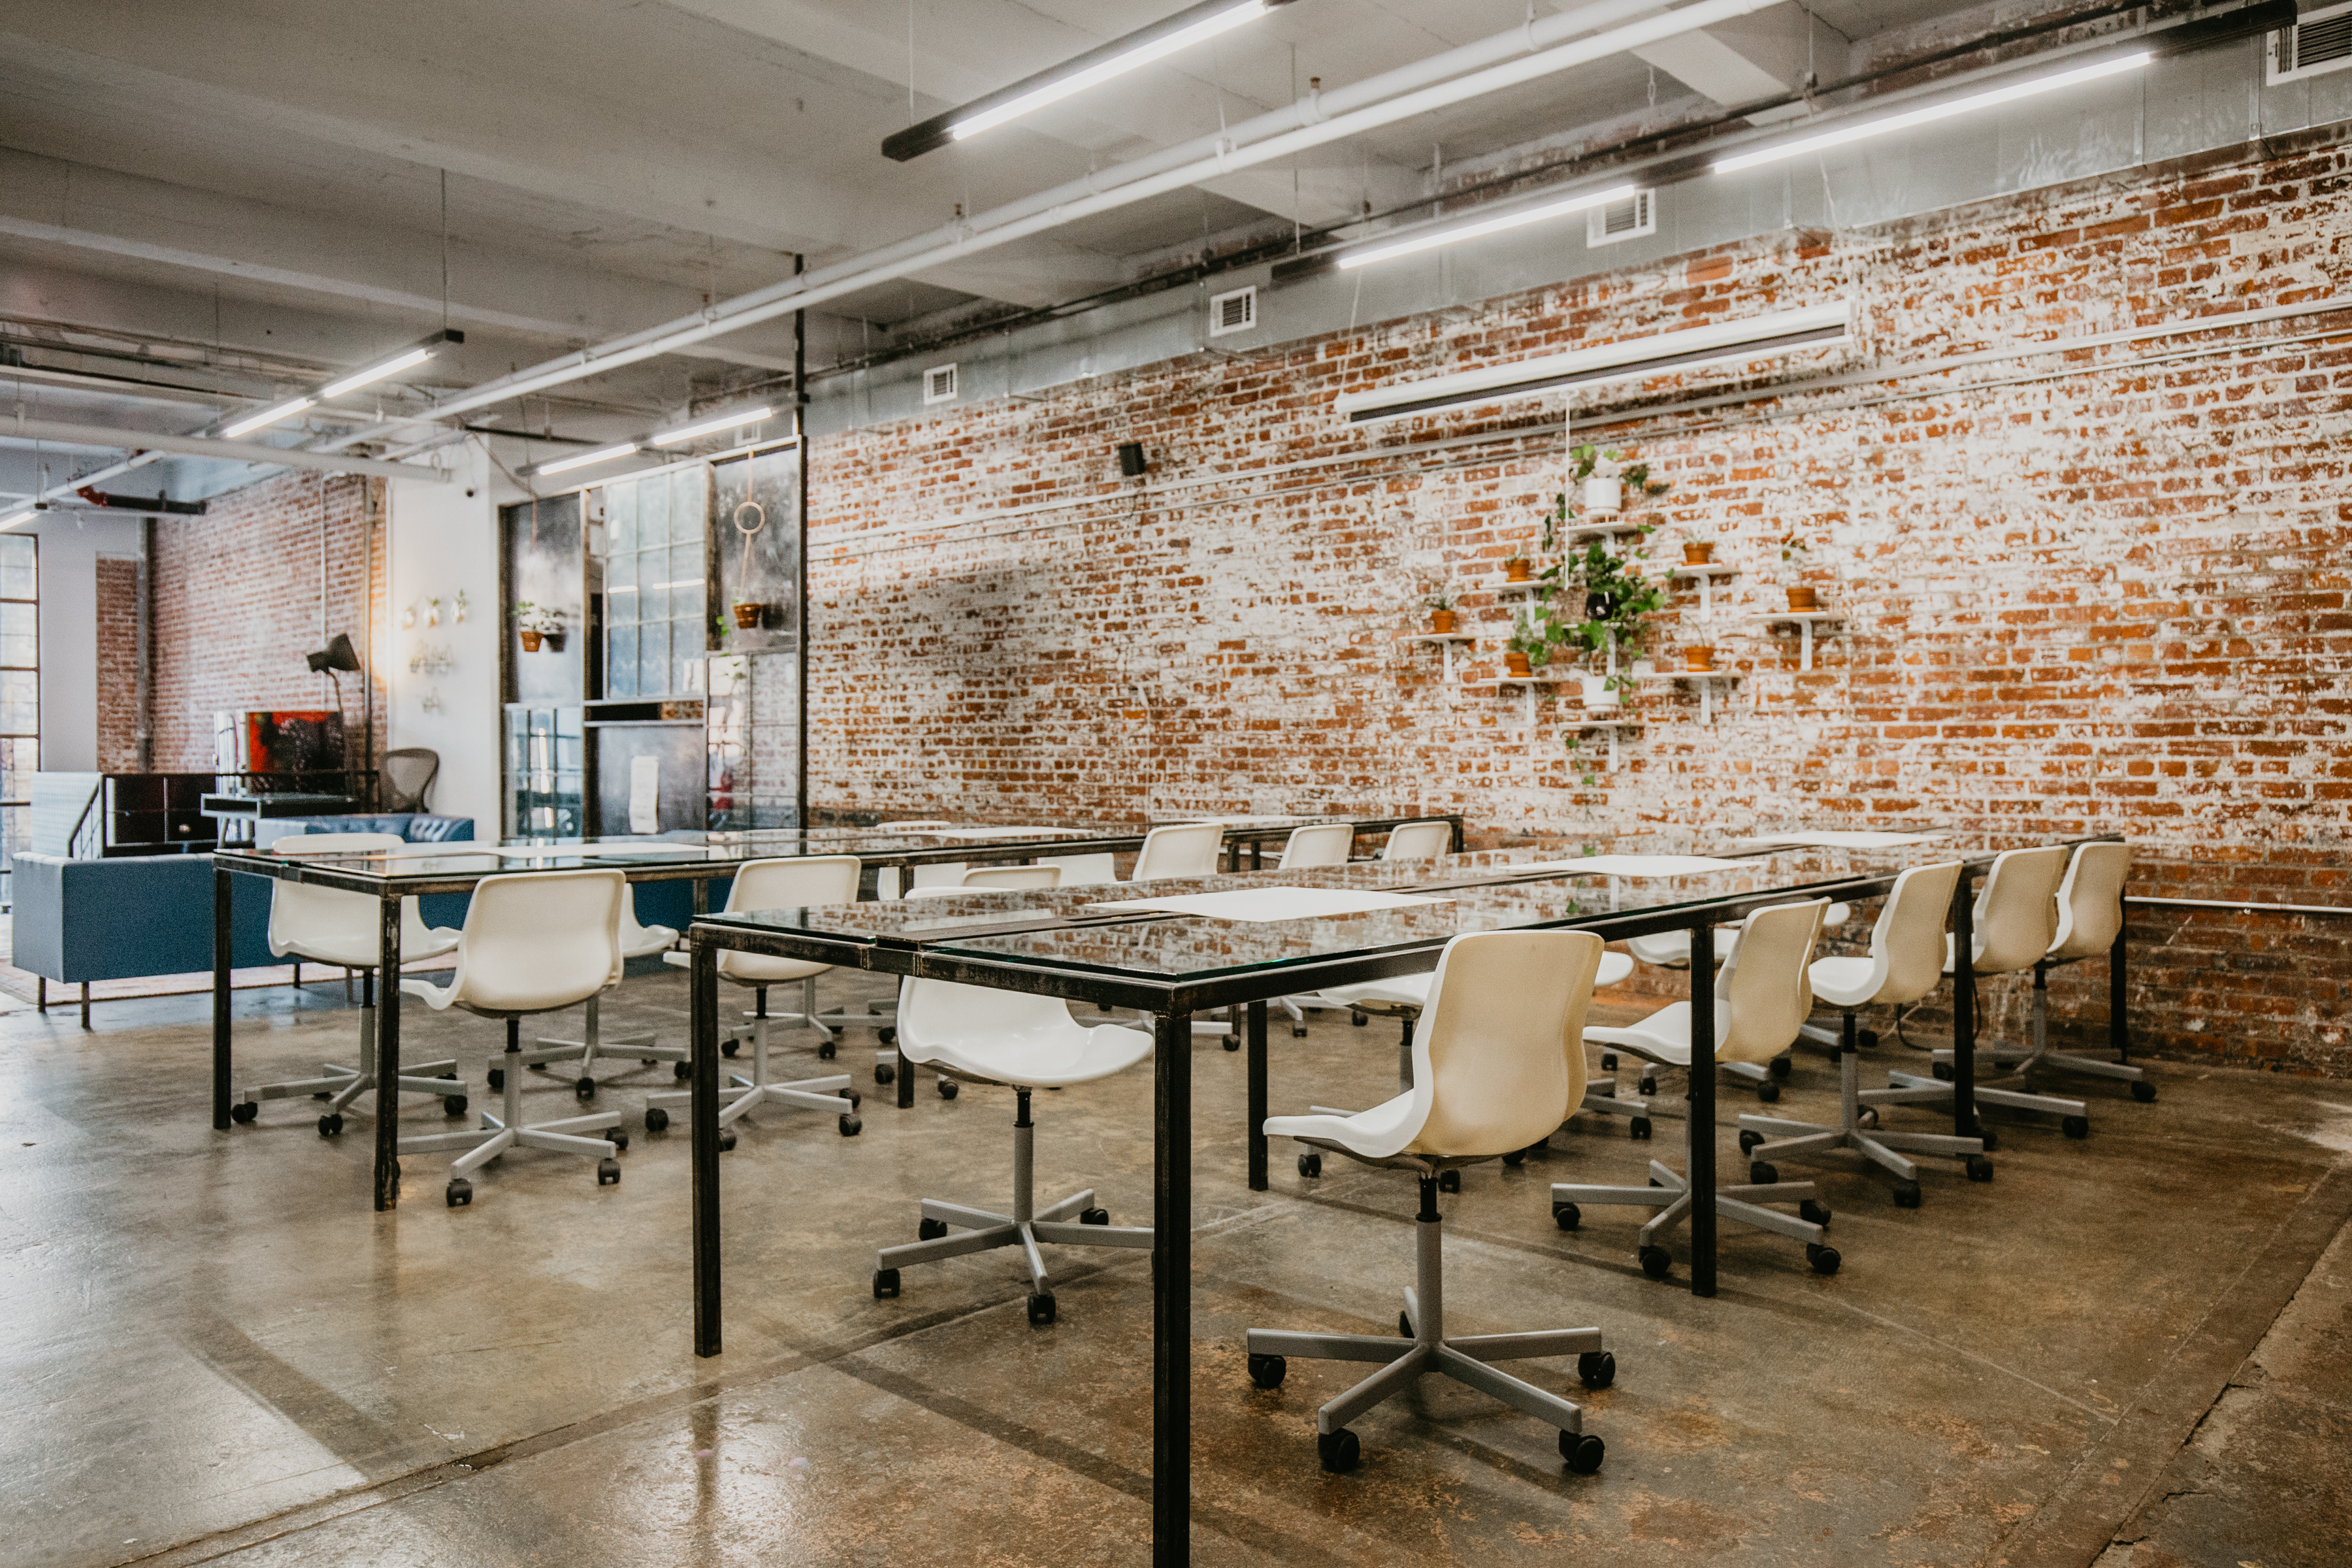 Industrial Workspace With Kitchenette Breakout Space Options Ridgewood Ny Off Site Peerspace